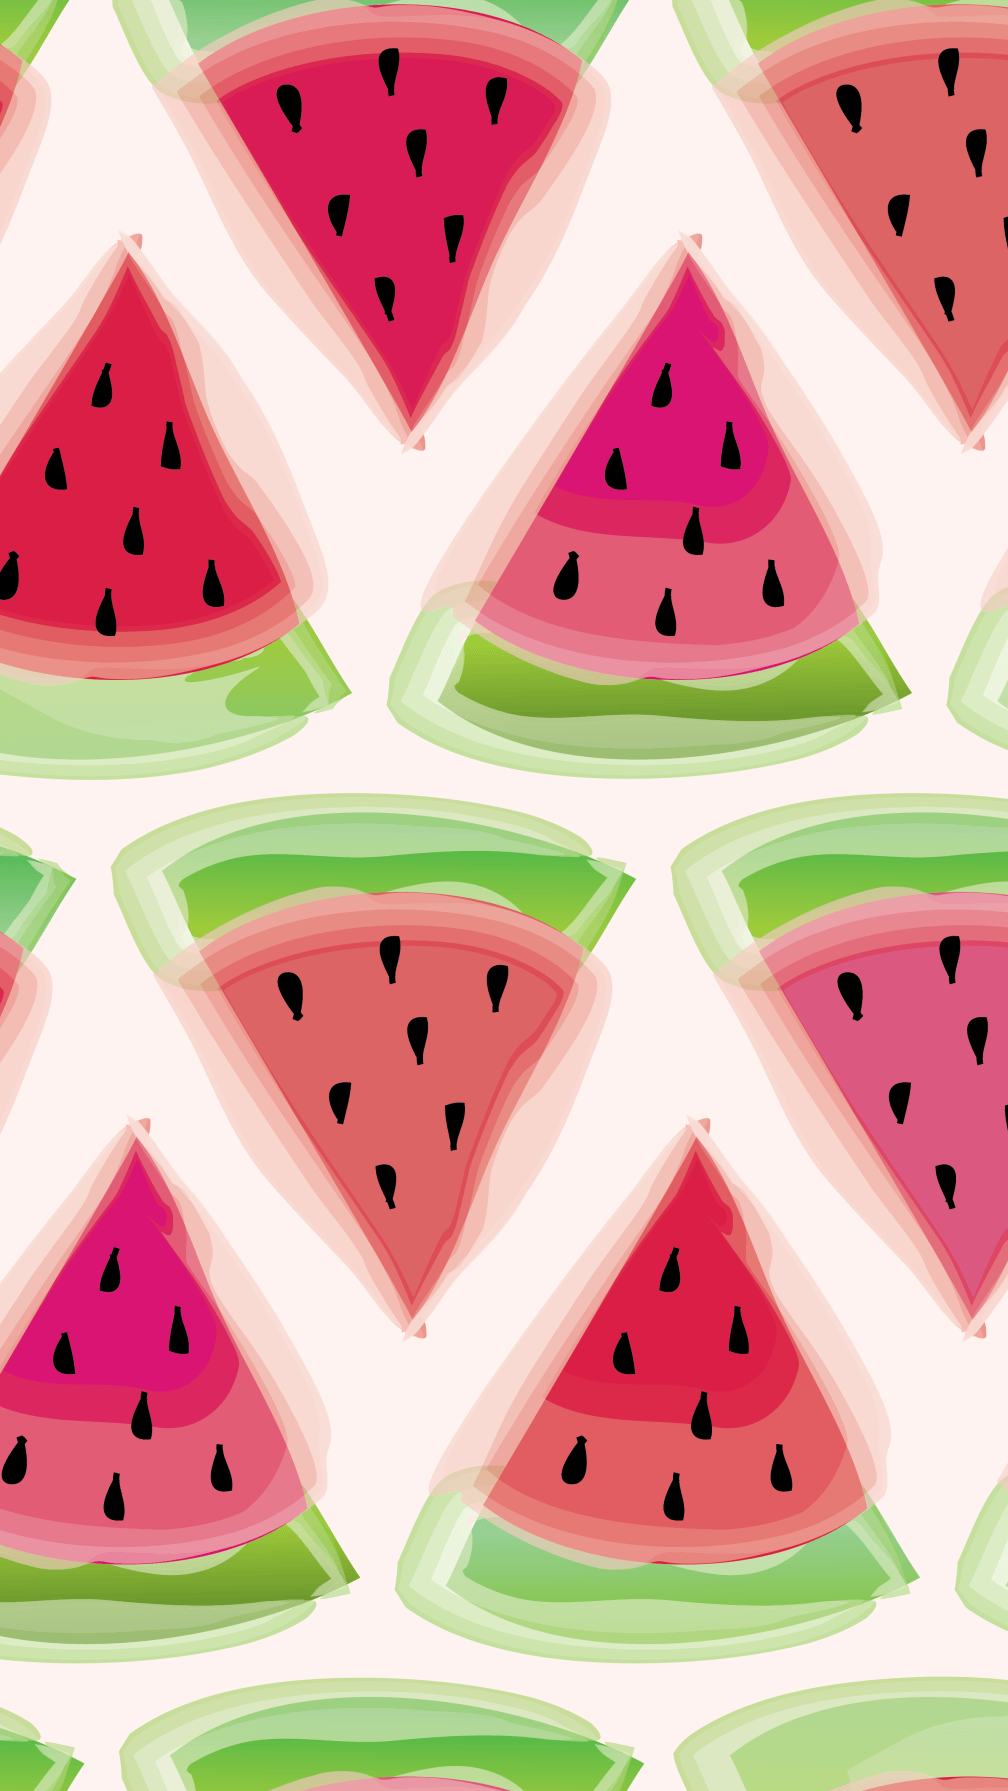 freebie - watermelon wallpaper | pinterest | wallpaper, android and